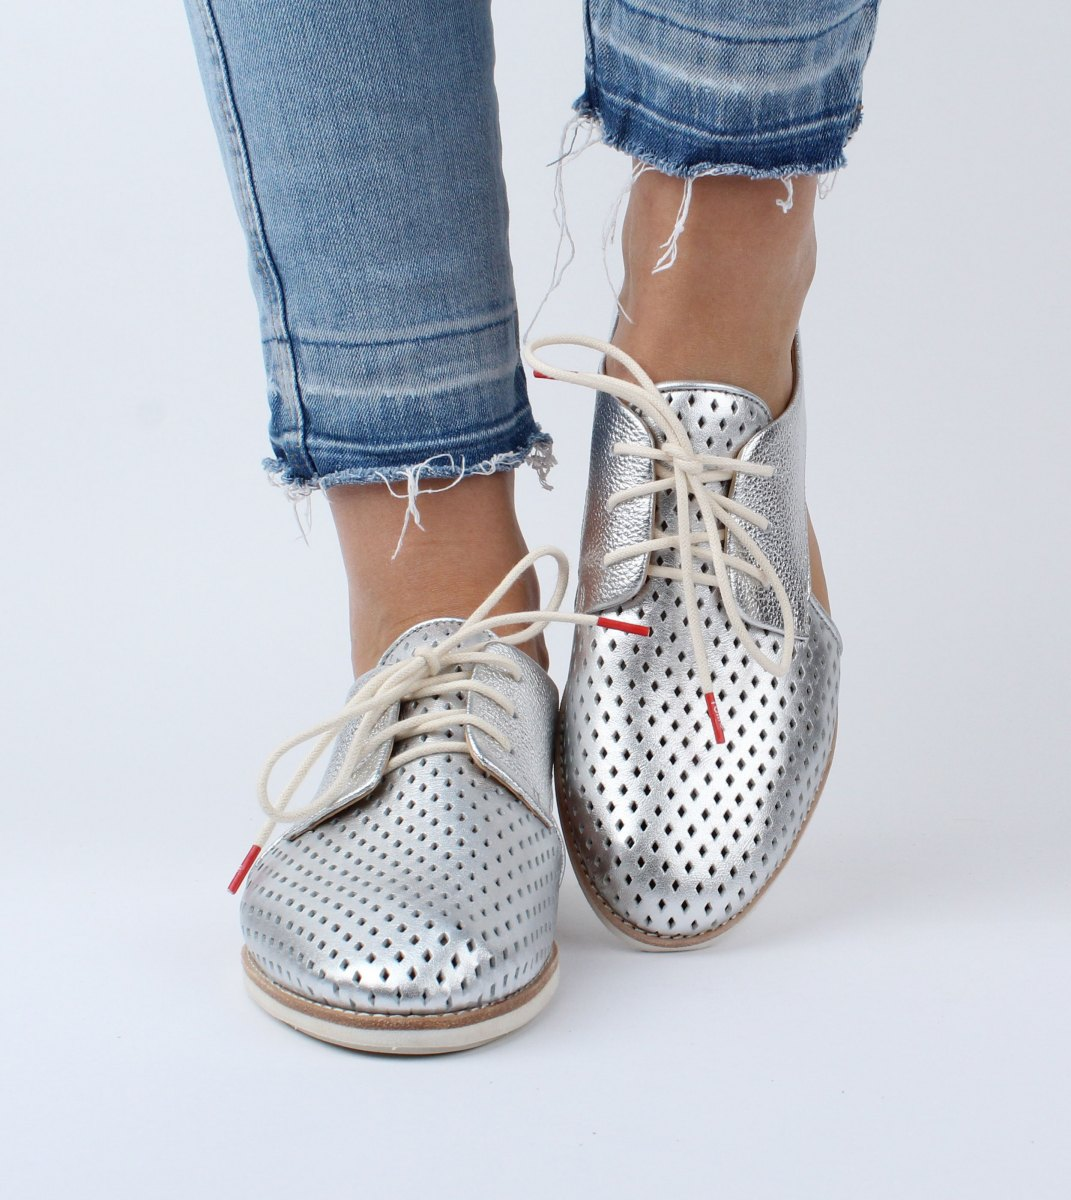 Rollie-Derby_Slingback_Punch-Silver-M4